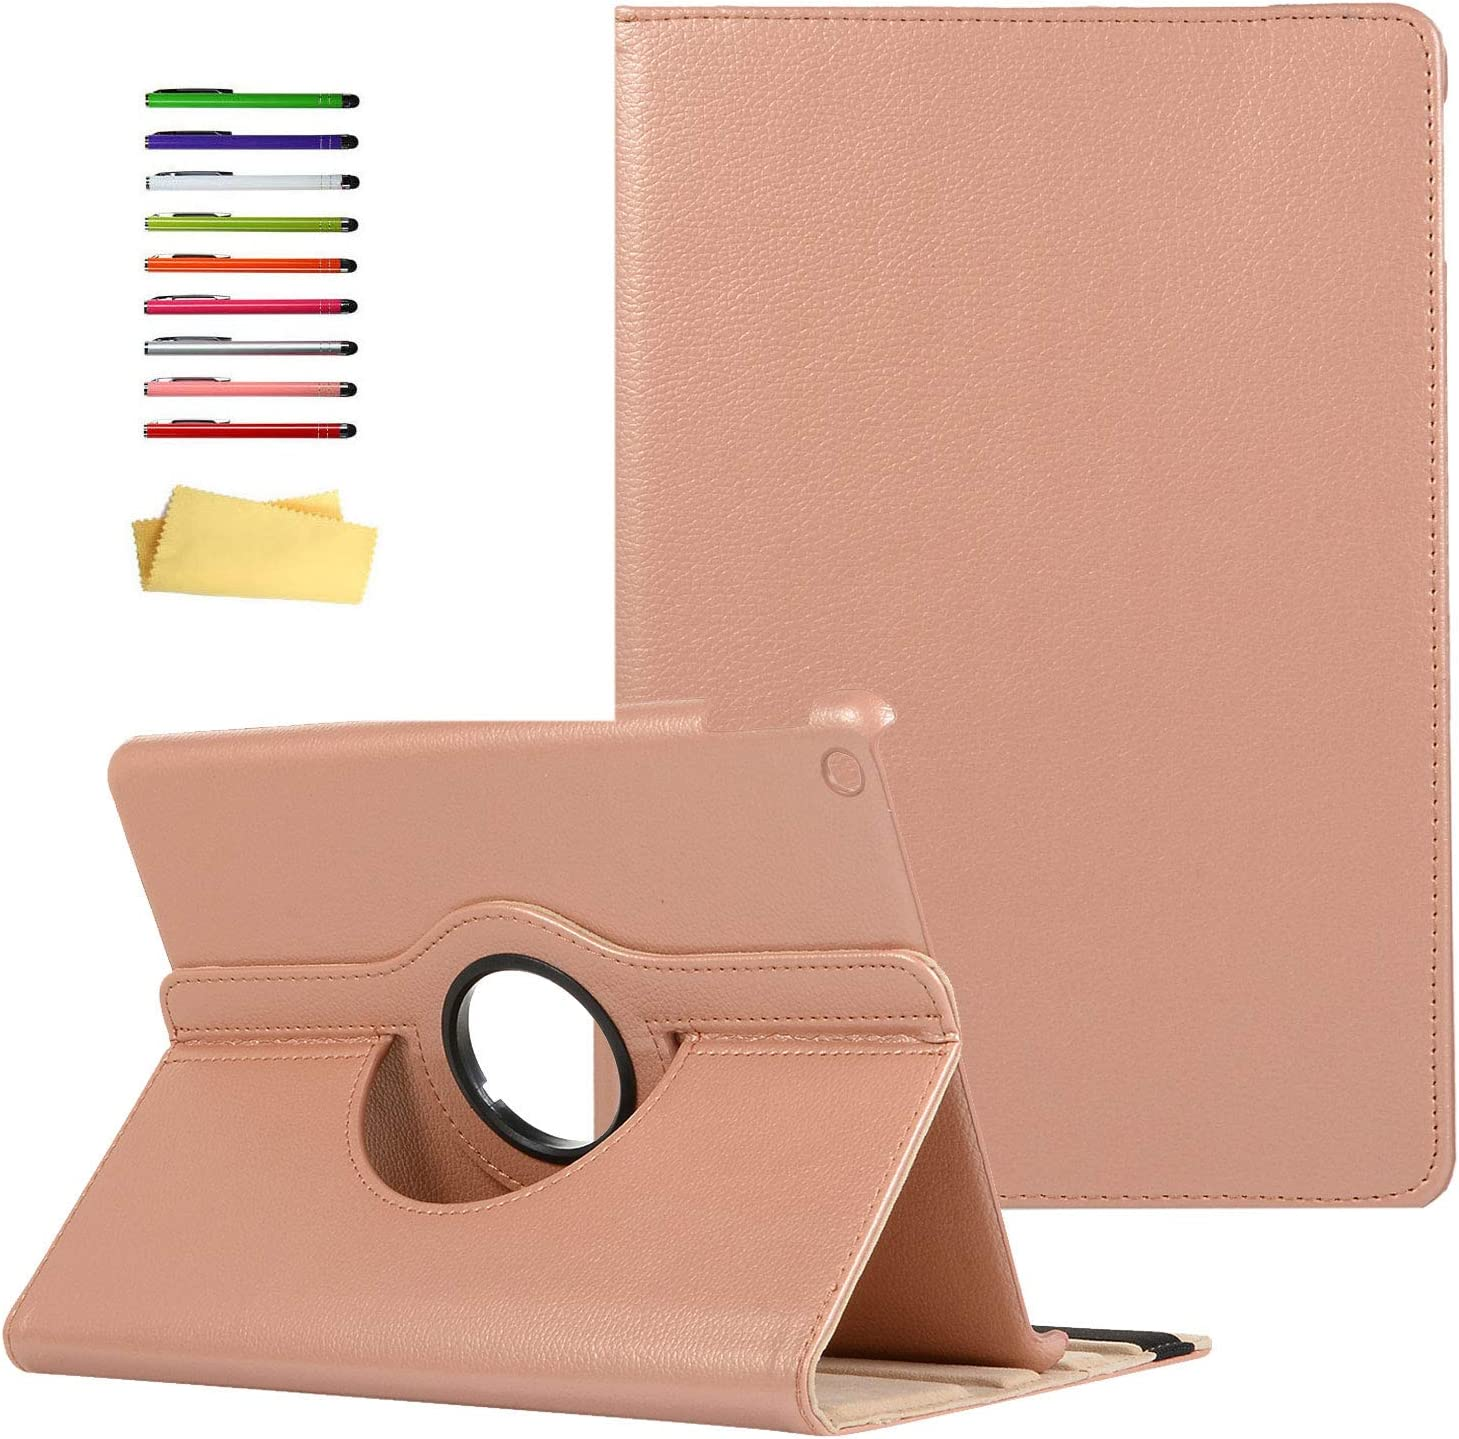 UUcovers iPad 10.2 inch 2020 2019 Case 8th /7th Generation, Smart Multi-Angle Viewing Stand 360 Degree Rotating PU Leather Folio Cover Hard Back Shockproof Swivel Shell with Auto Wake/Sleep, Rosegold